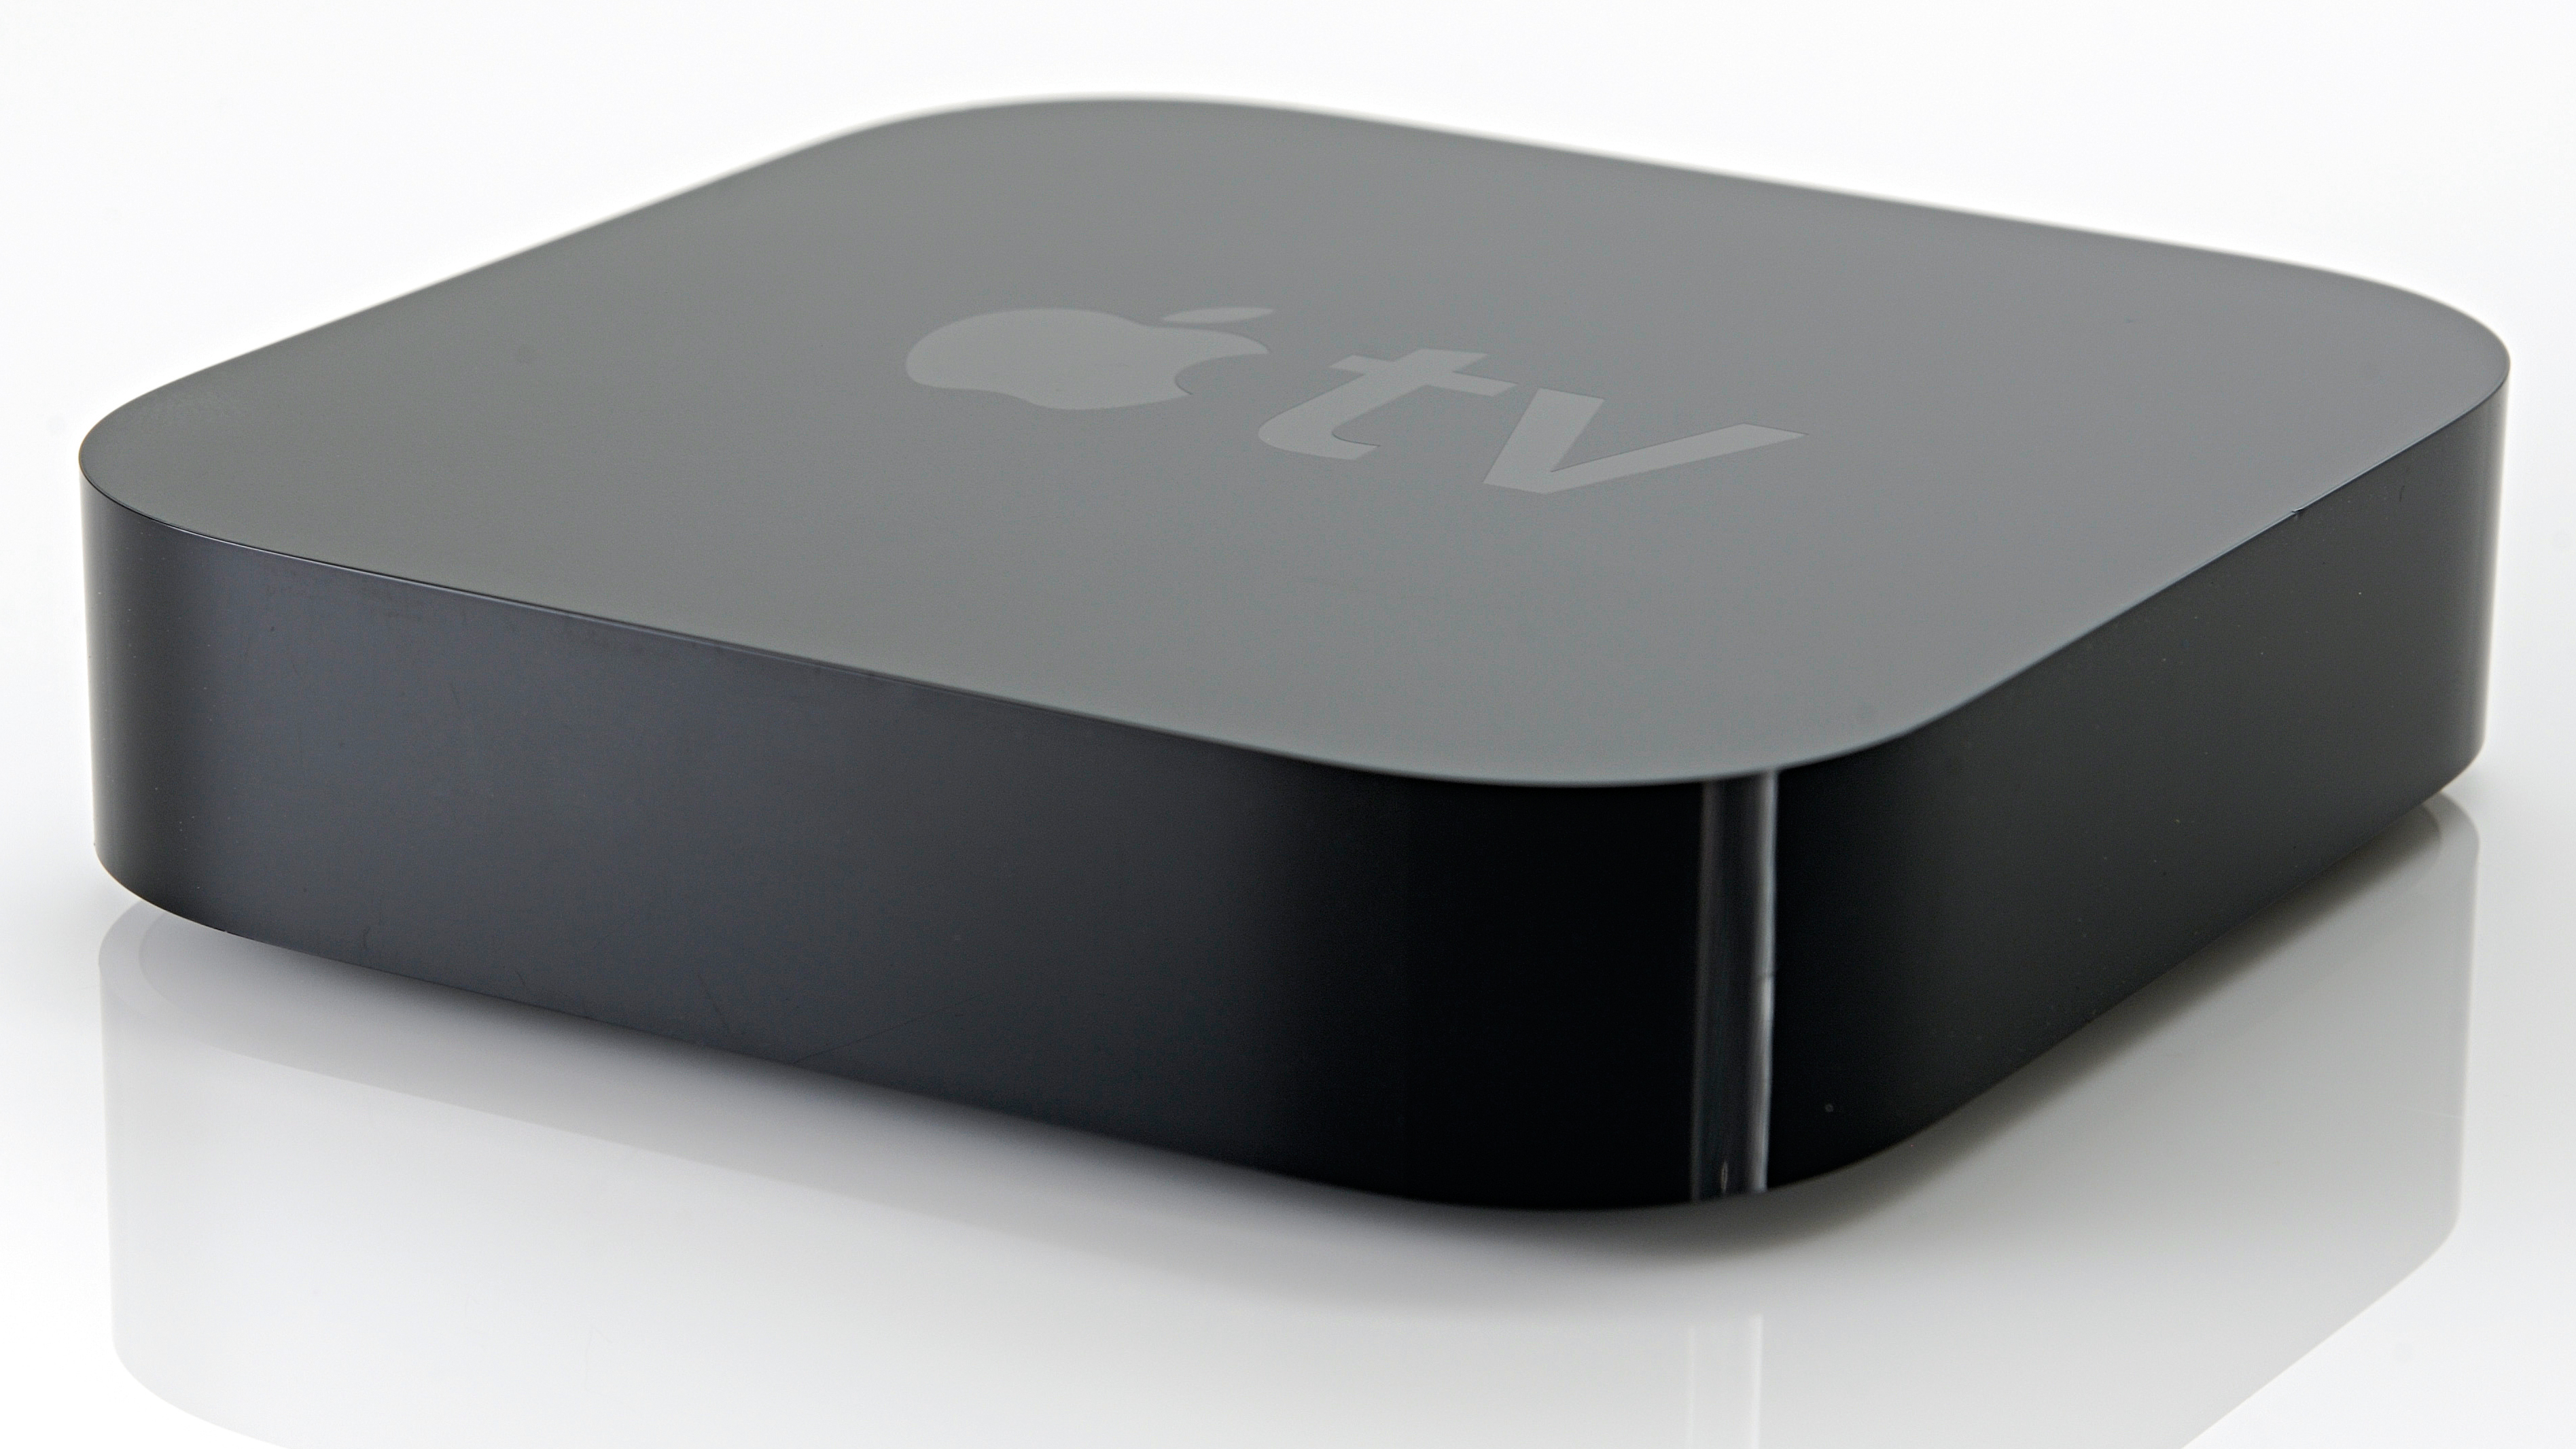 Apple TV (2013) review: Page 2 | TechRadar